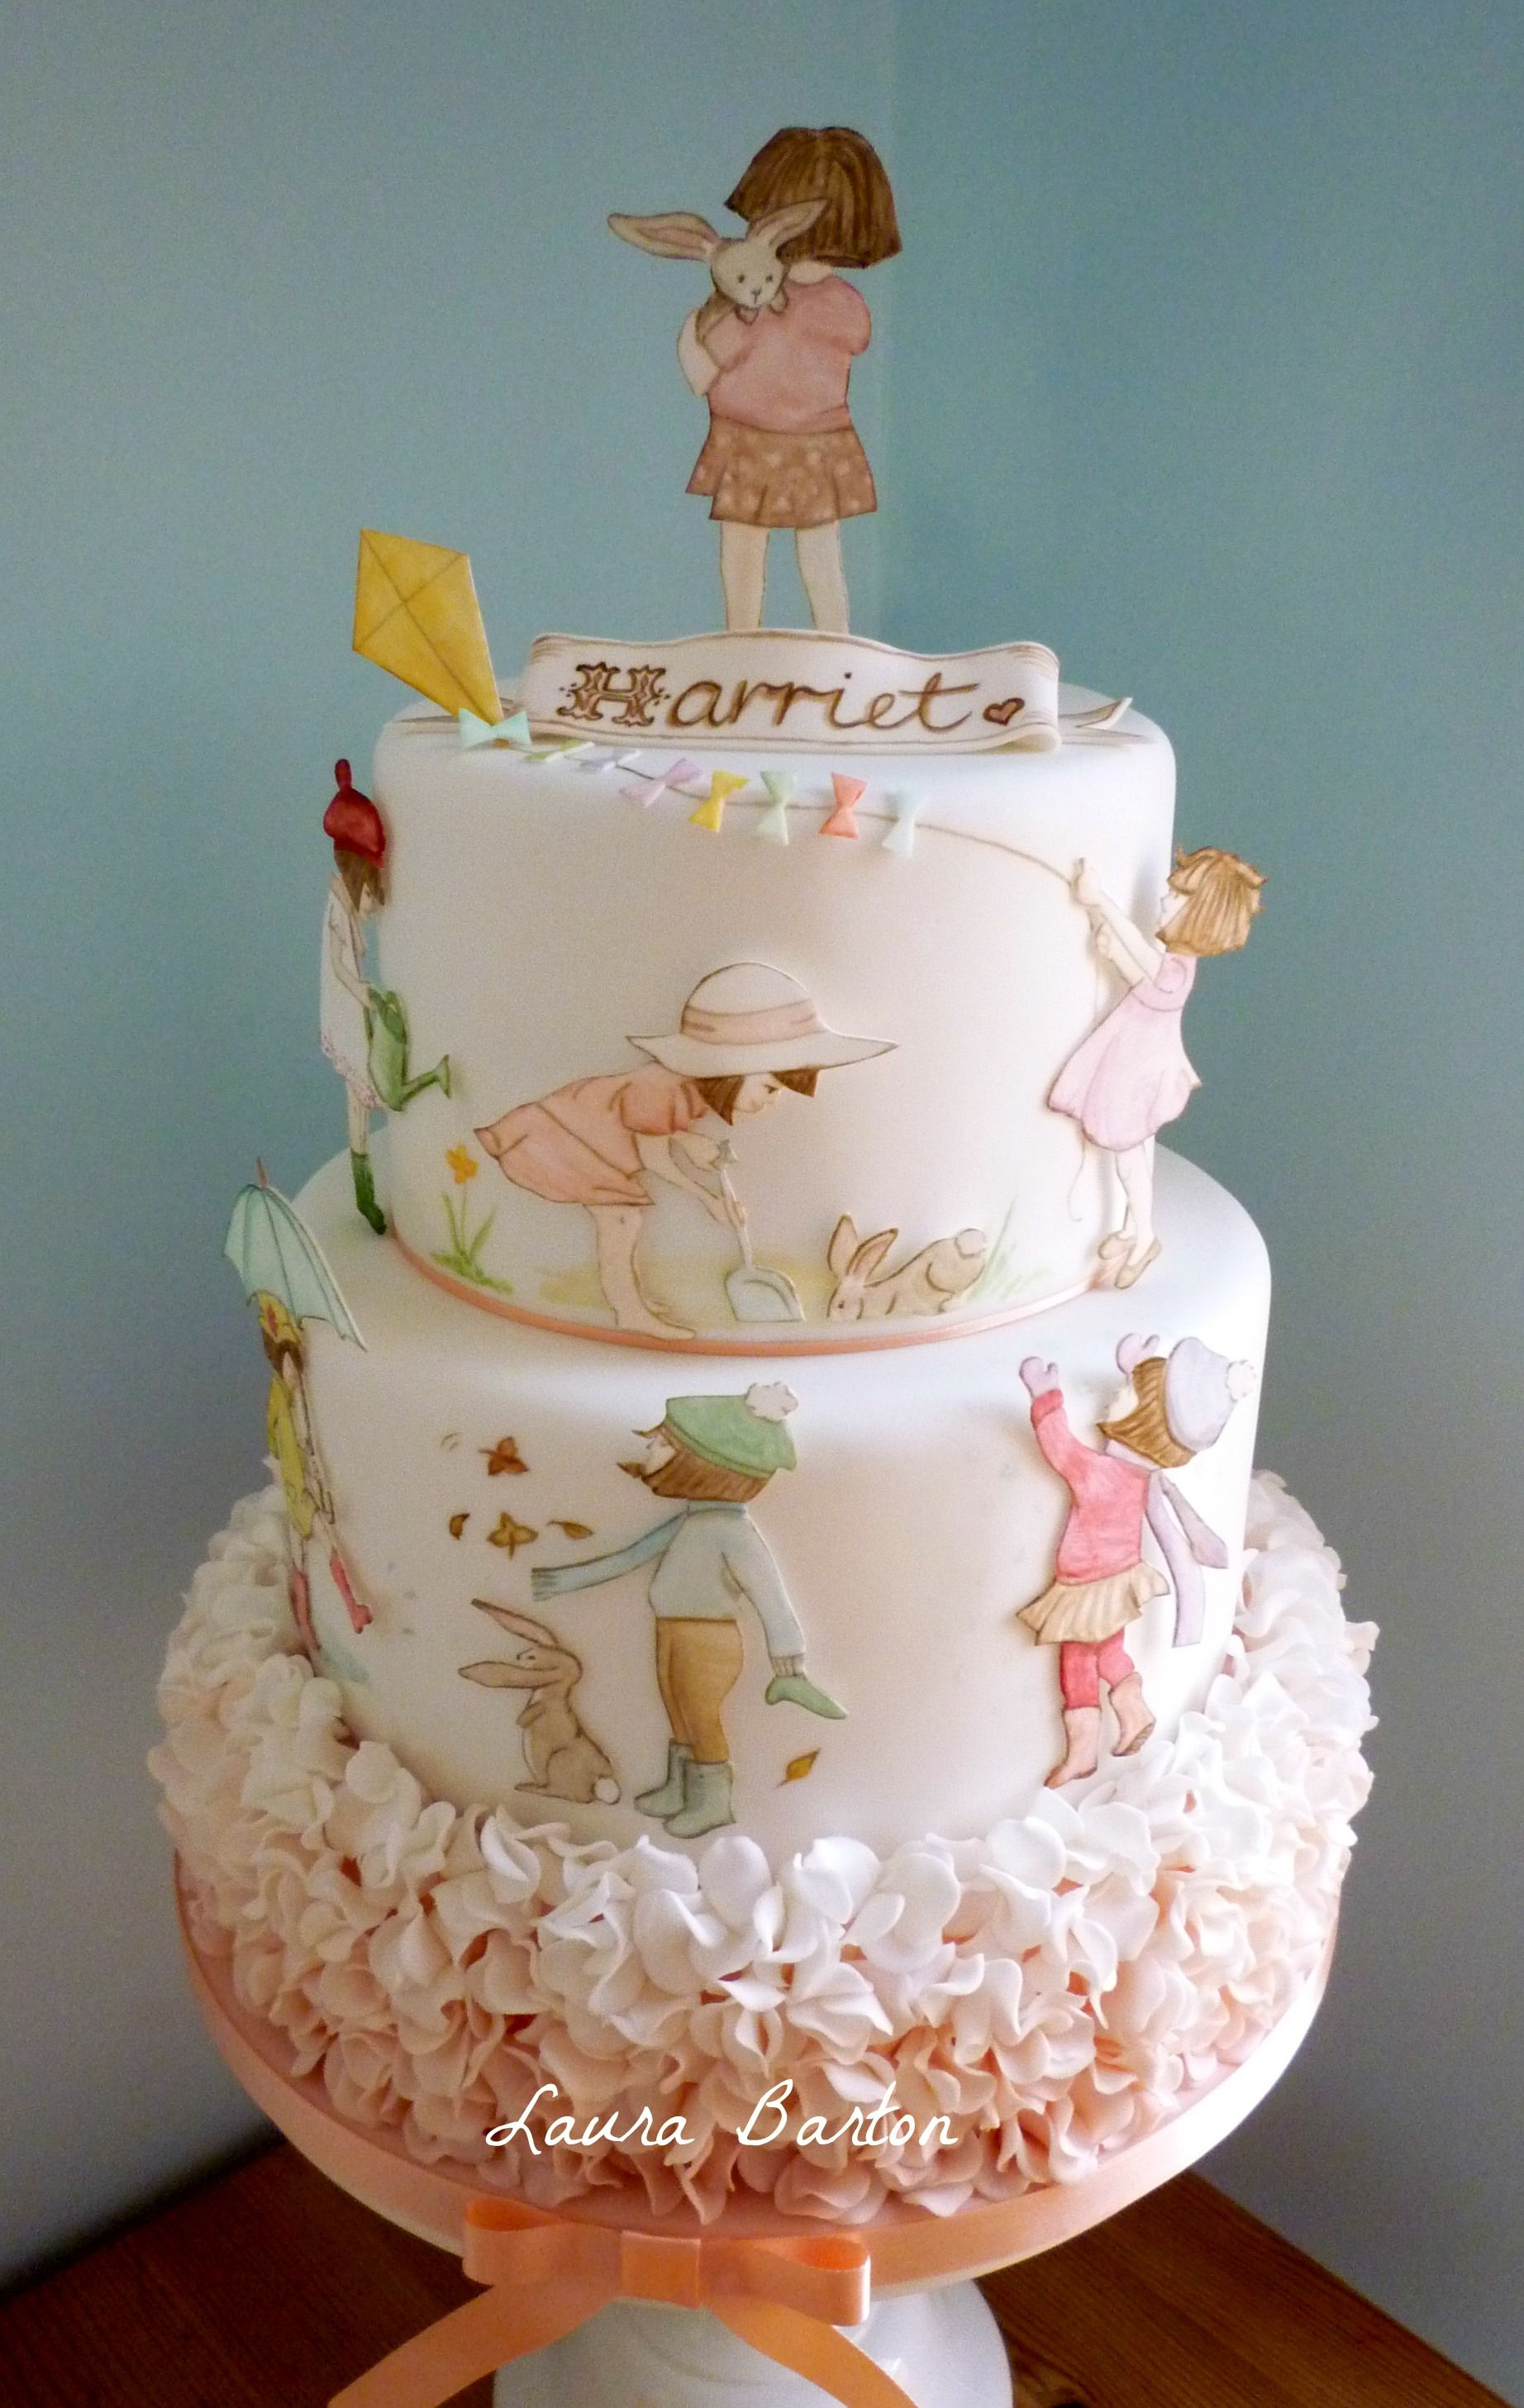 hand painted Belle & Boo cake with ruffles